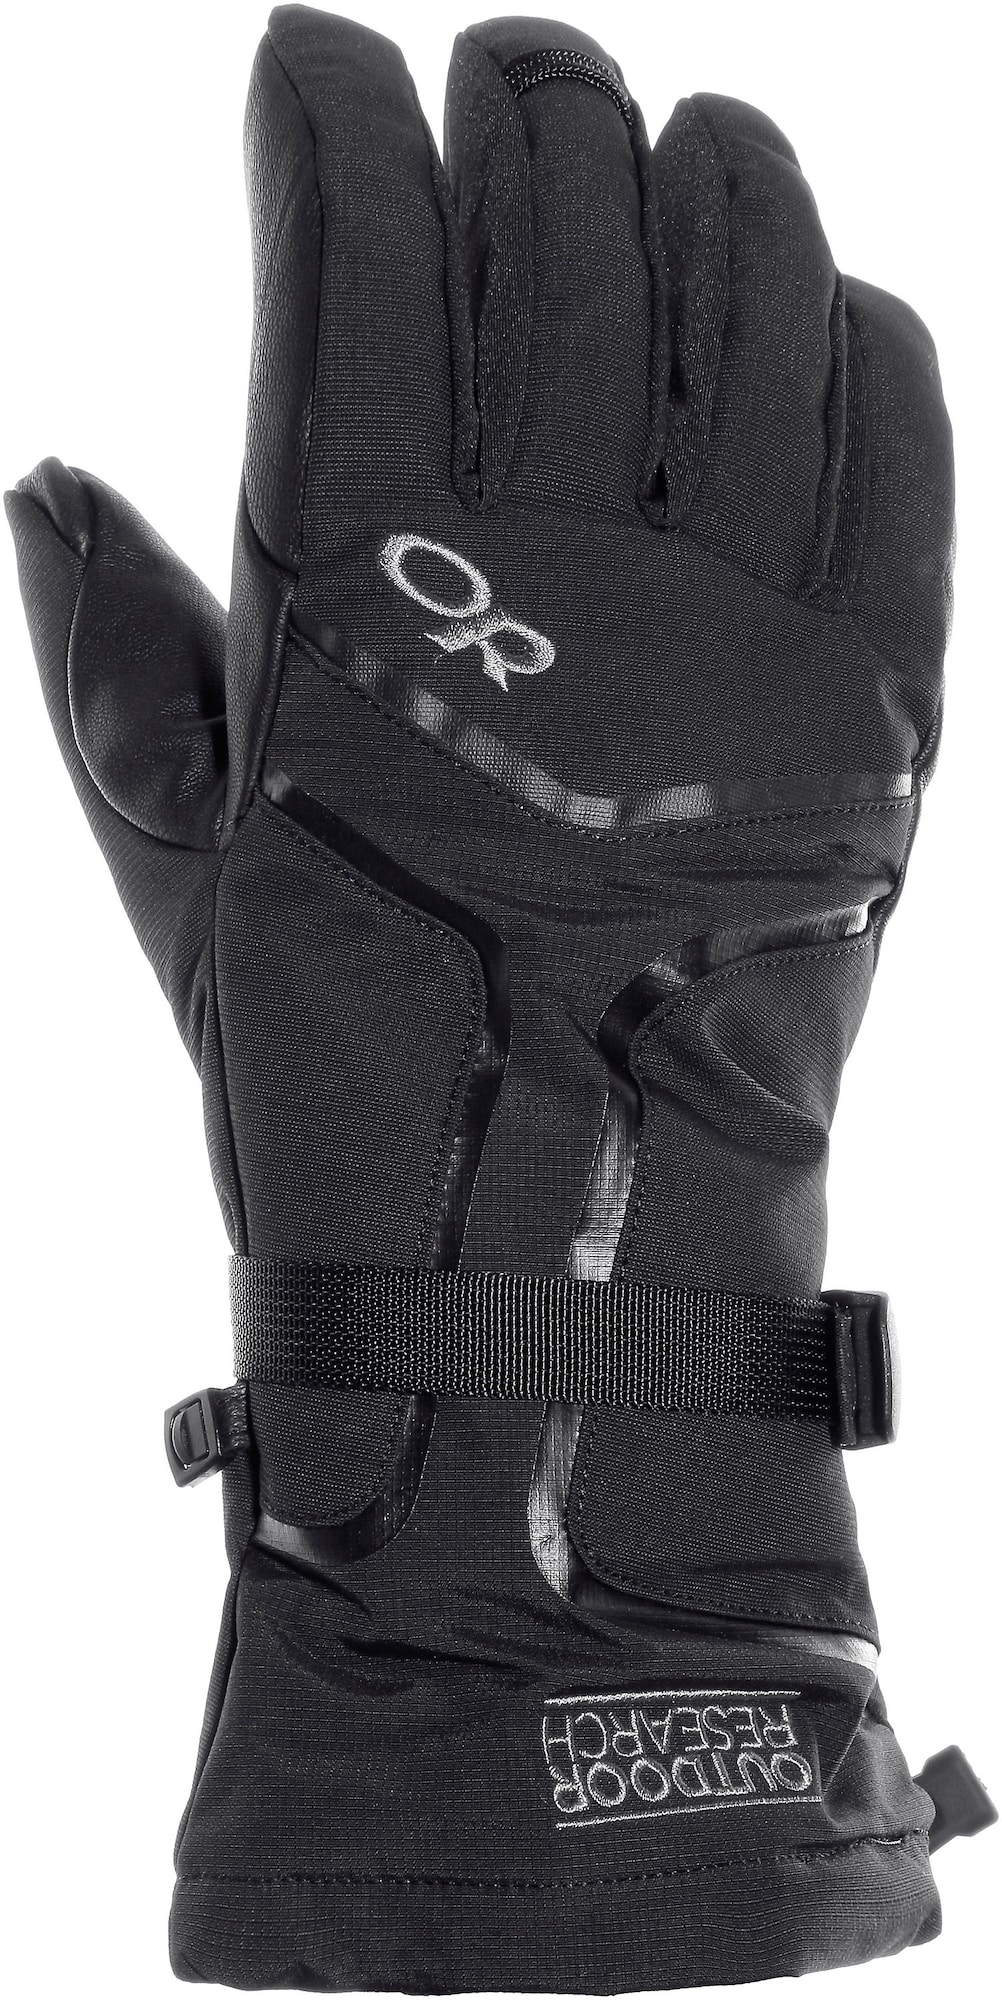 Handschuhe für Frauen - Outdoor Research Highcamp Outdoorhandschuhe schwarz  - Onlineshop ABOUT YOU